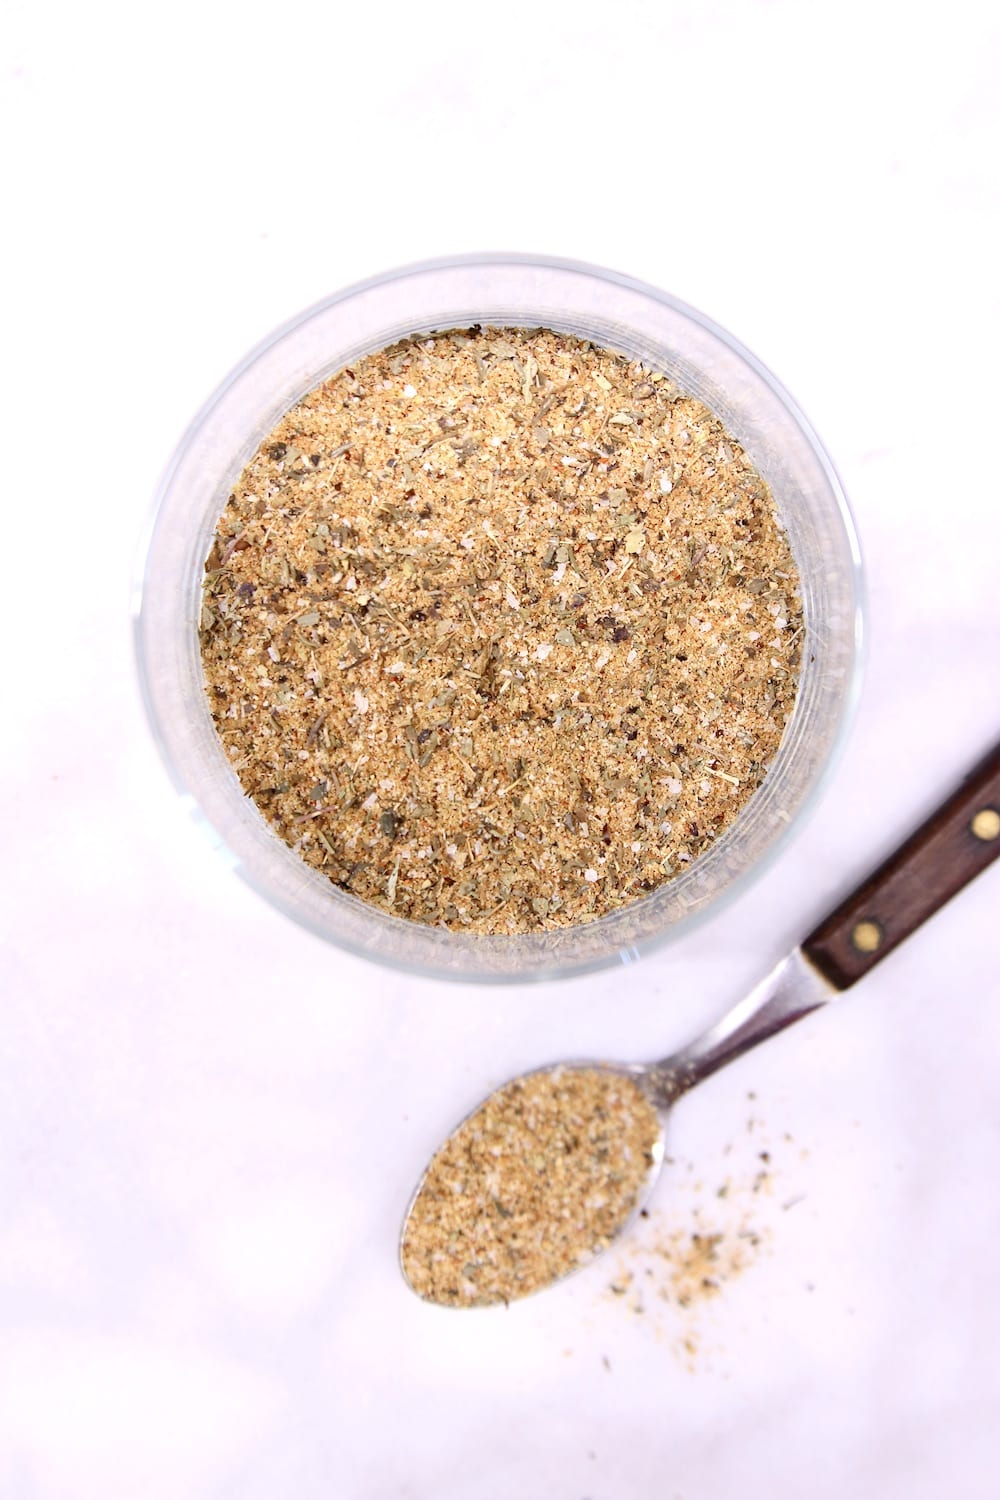 Garlic and Herb Dry Rub in a jar with a spoonful next to the jar